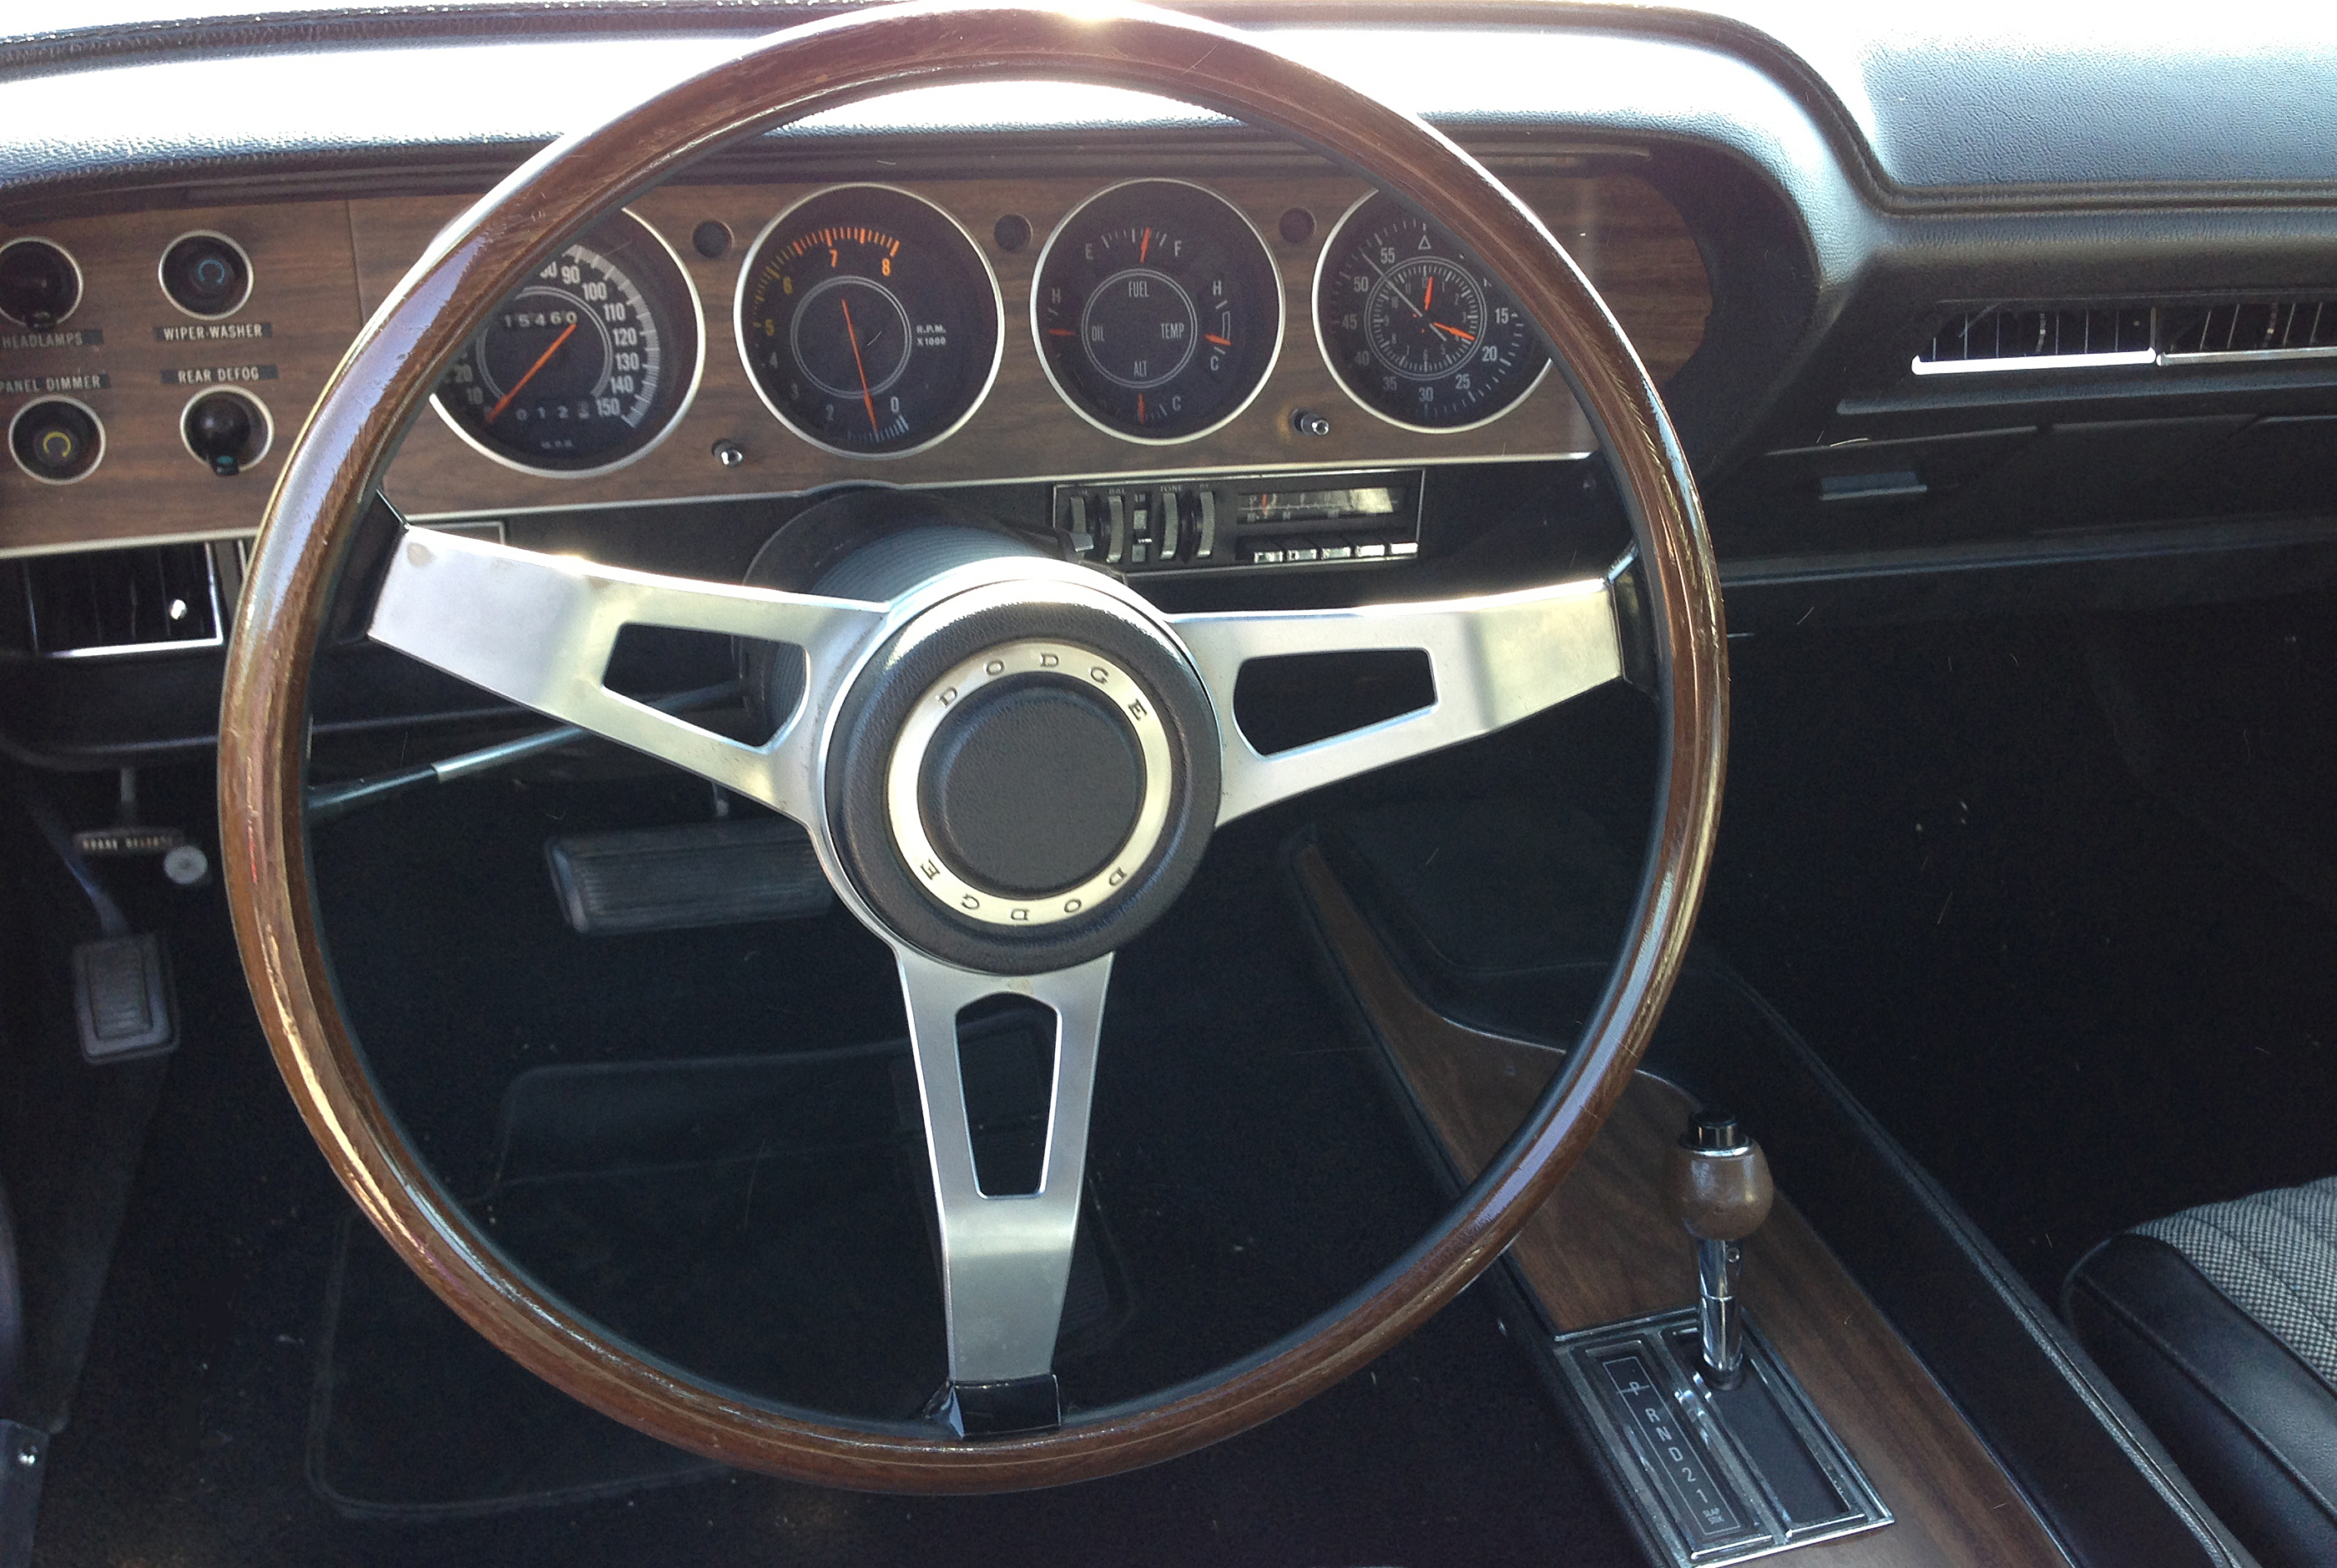 1970 Dodge Challenger RT Steering Wheel